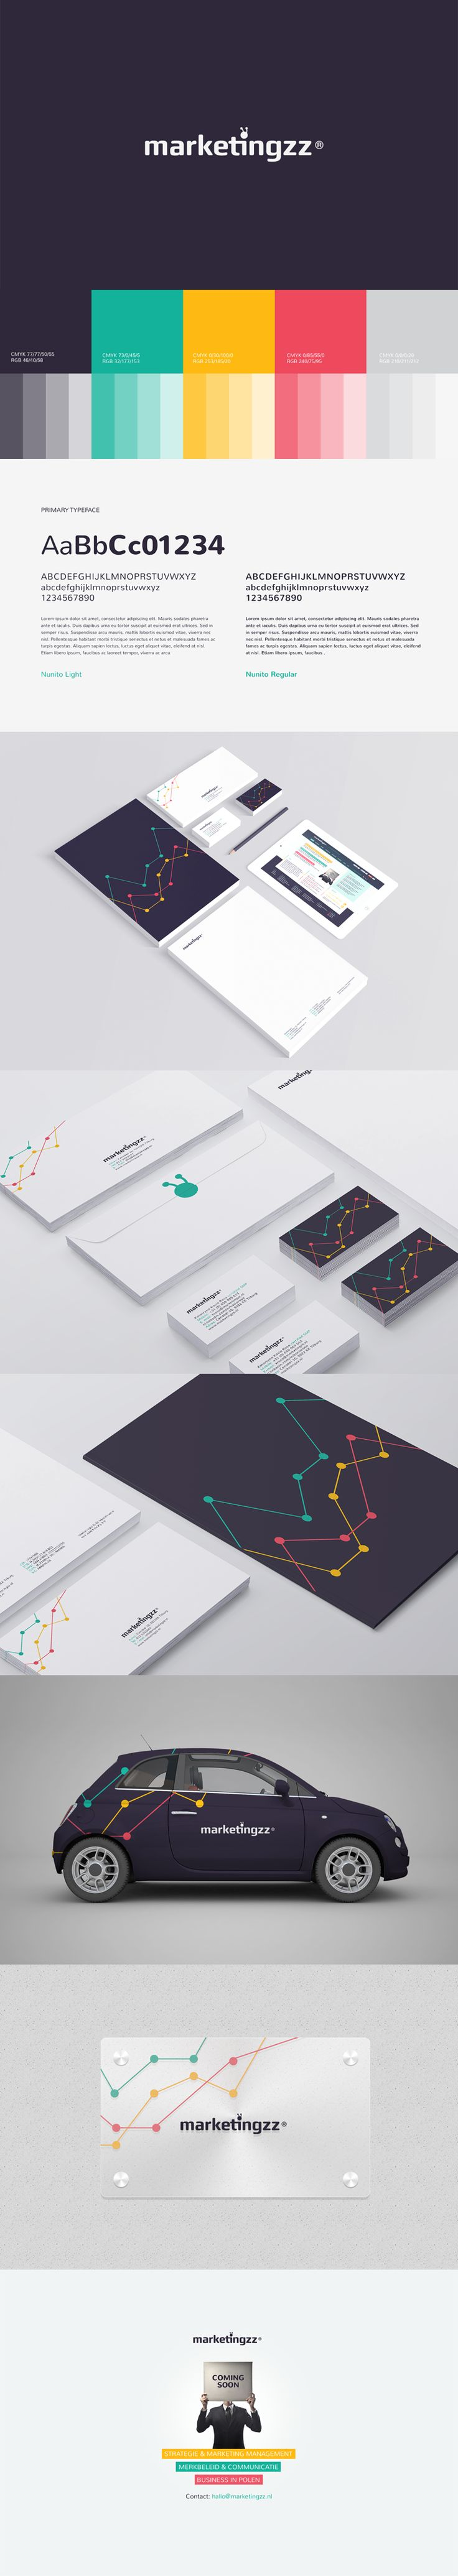 Branding for a company  I liked the colors used and how it seems to be playful.